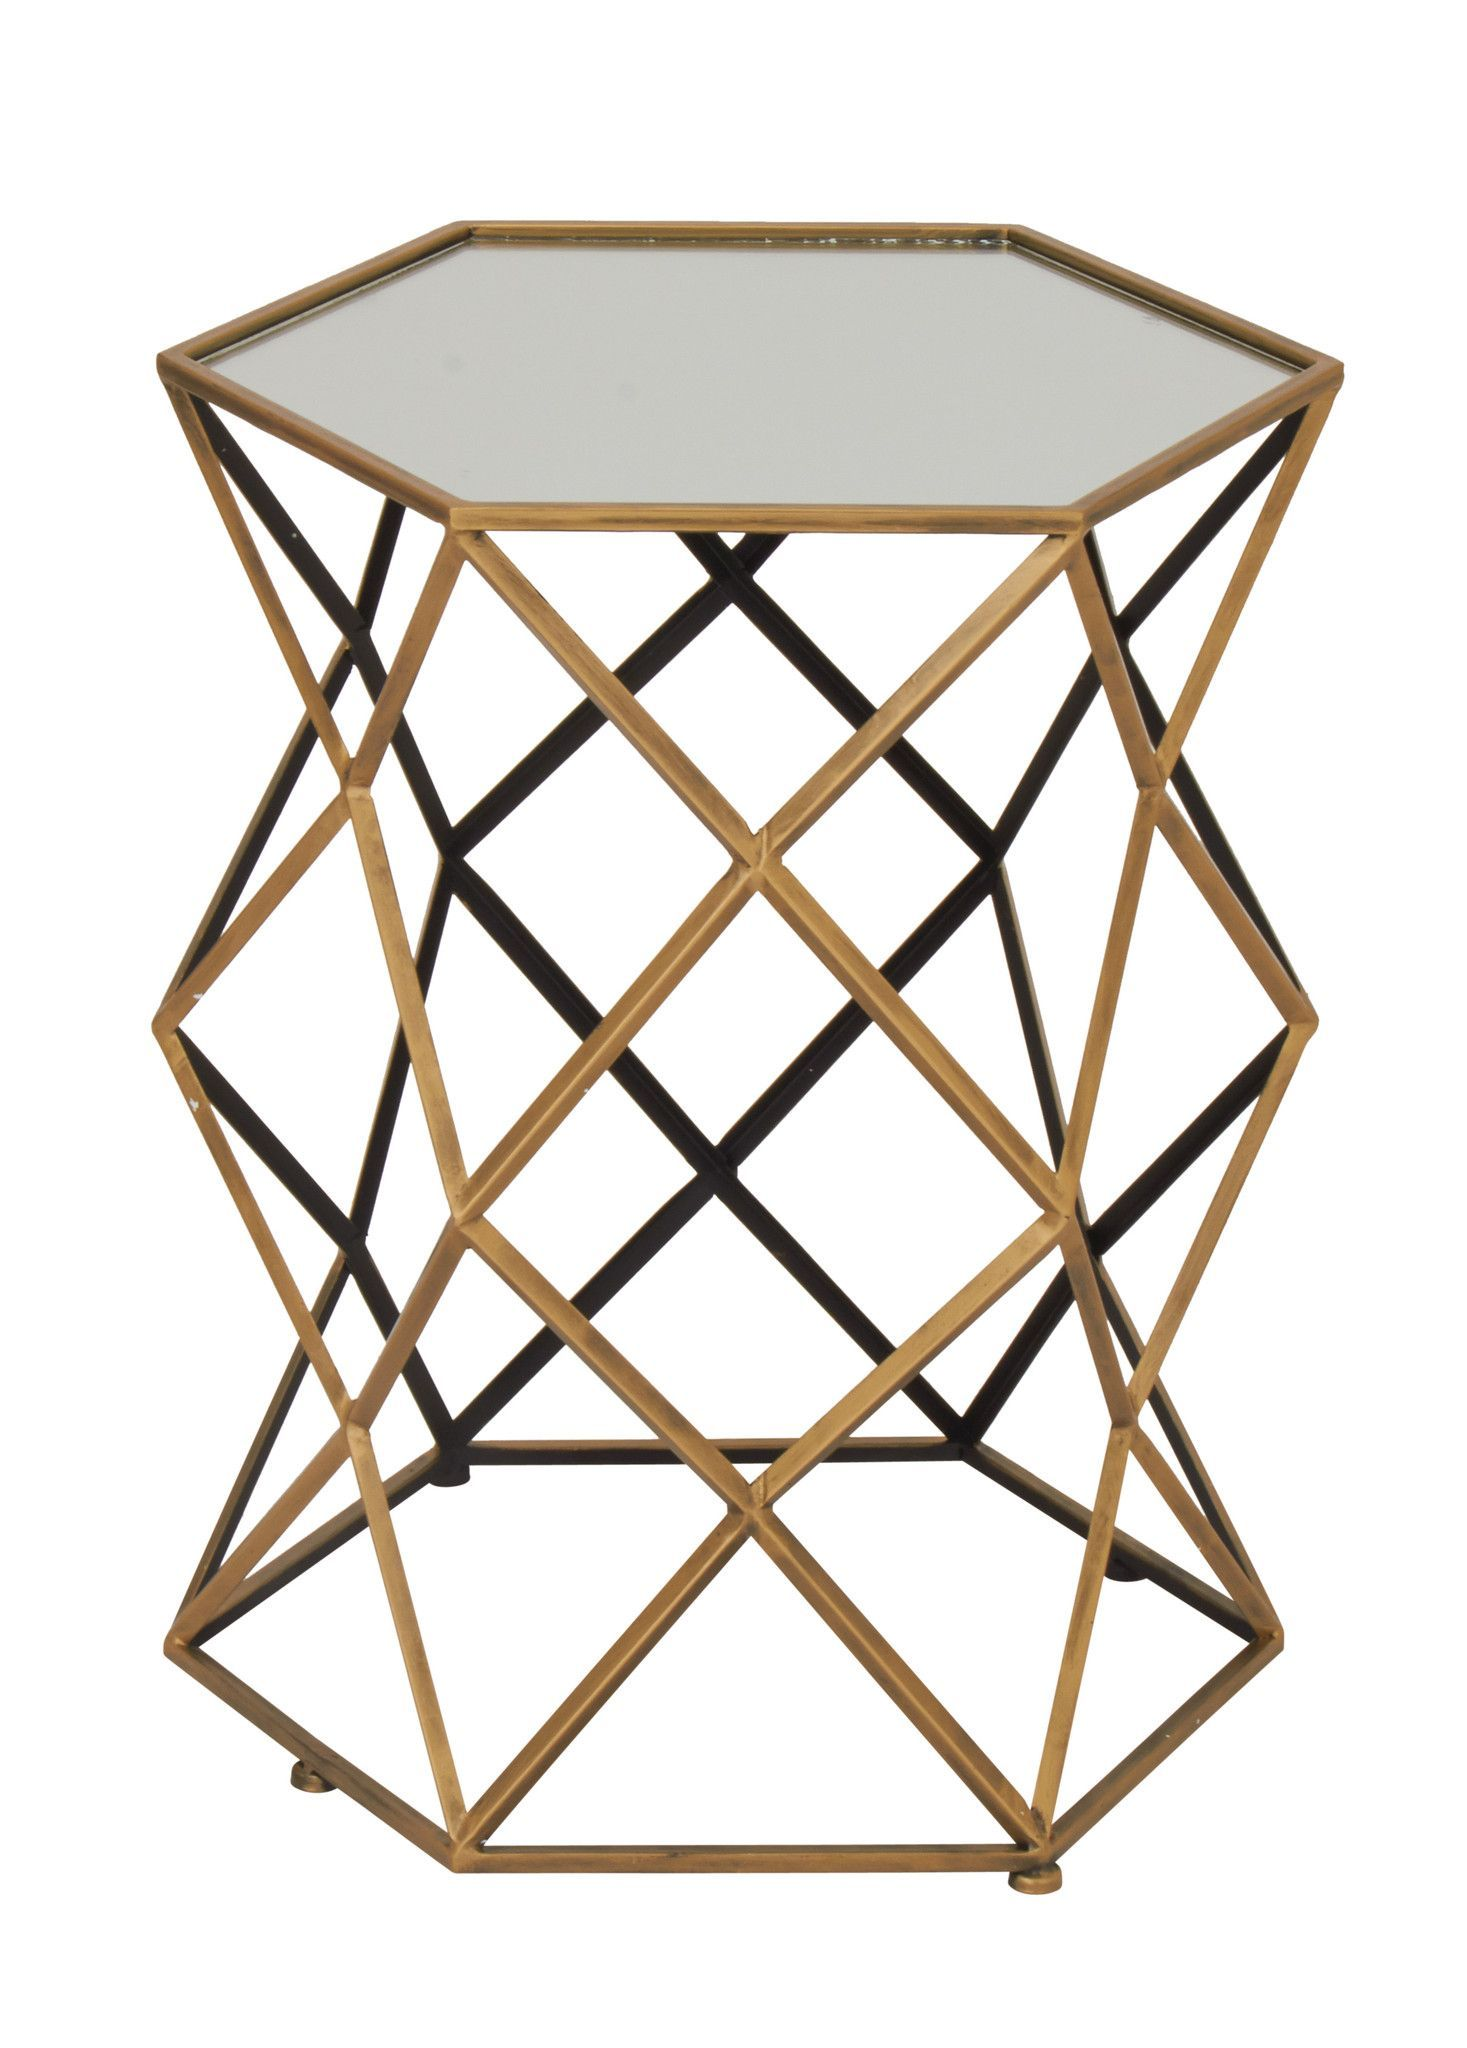 magnificent metal mirror accent table future target tripod lamp contemporary coffee decor woven outdoor furniture with drawer and shelf round bedside ikea small storage safavieh